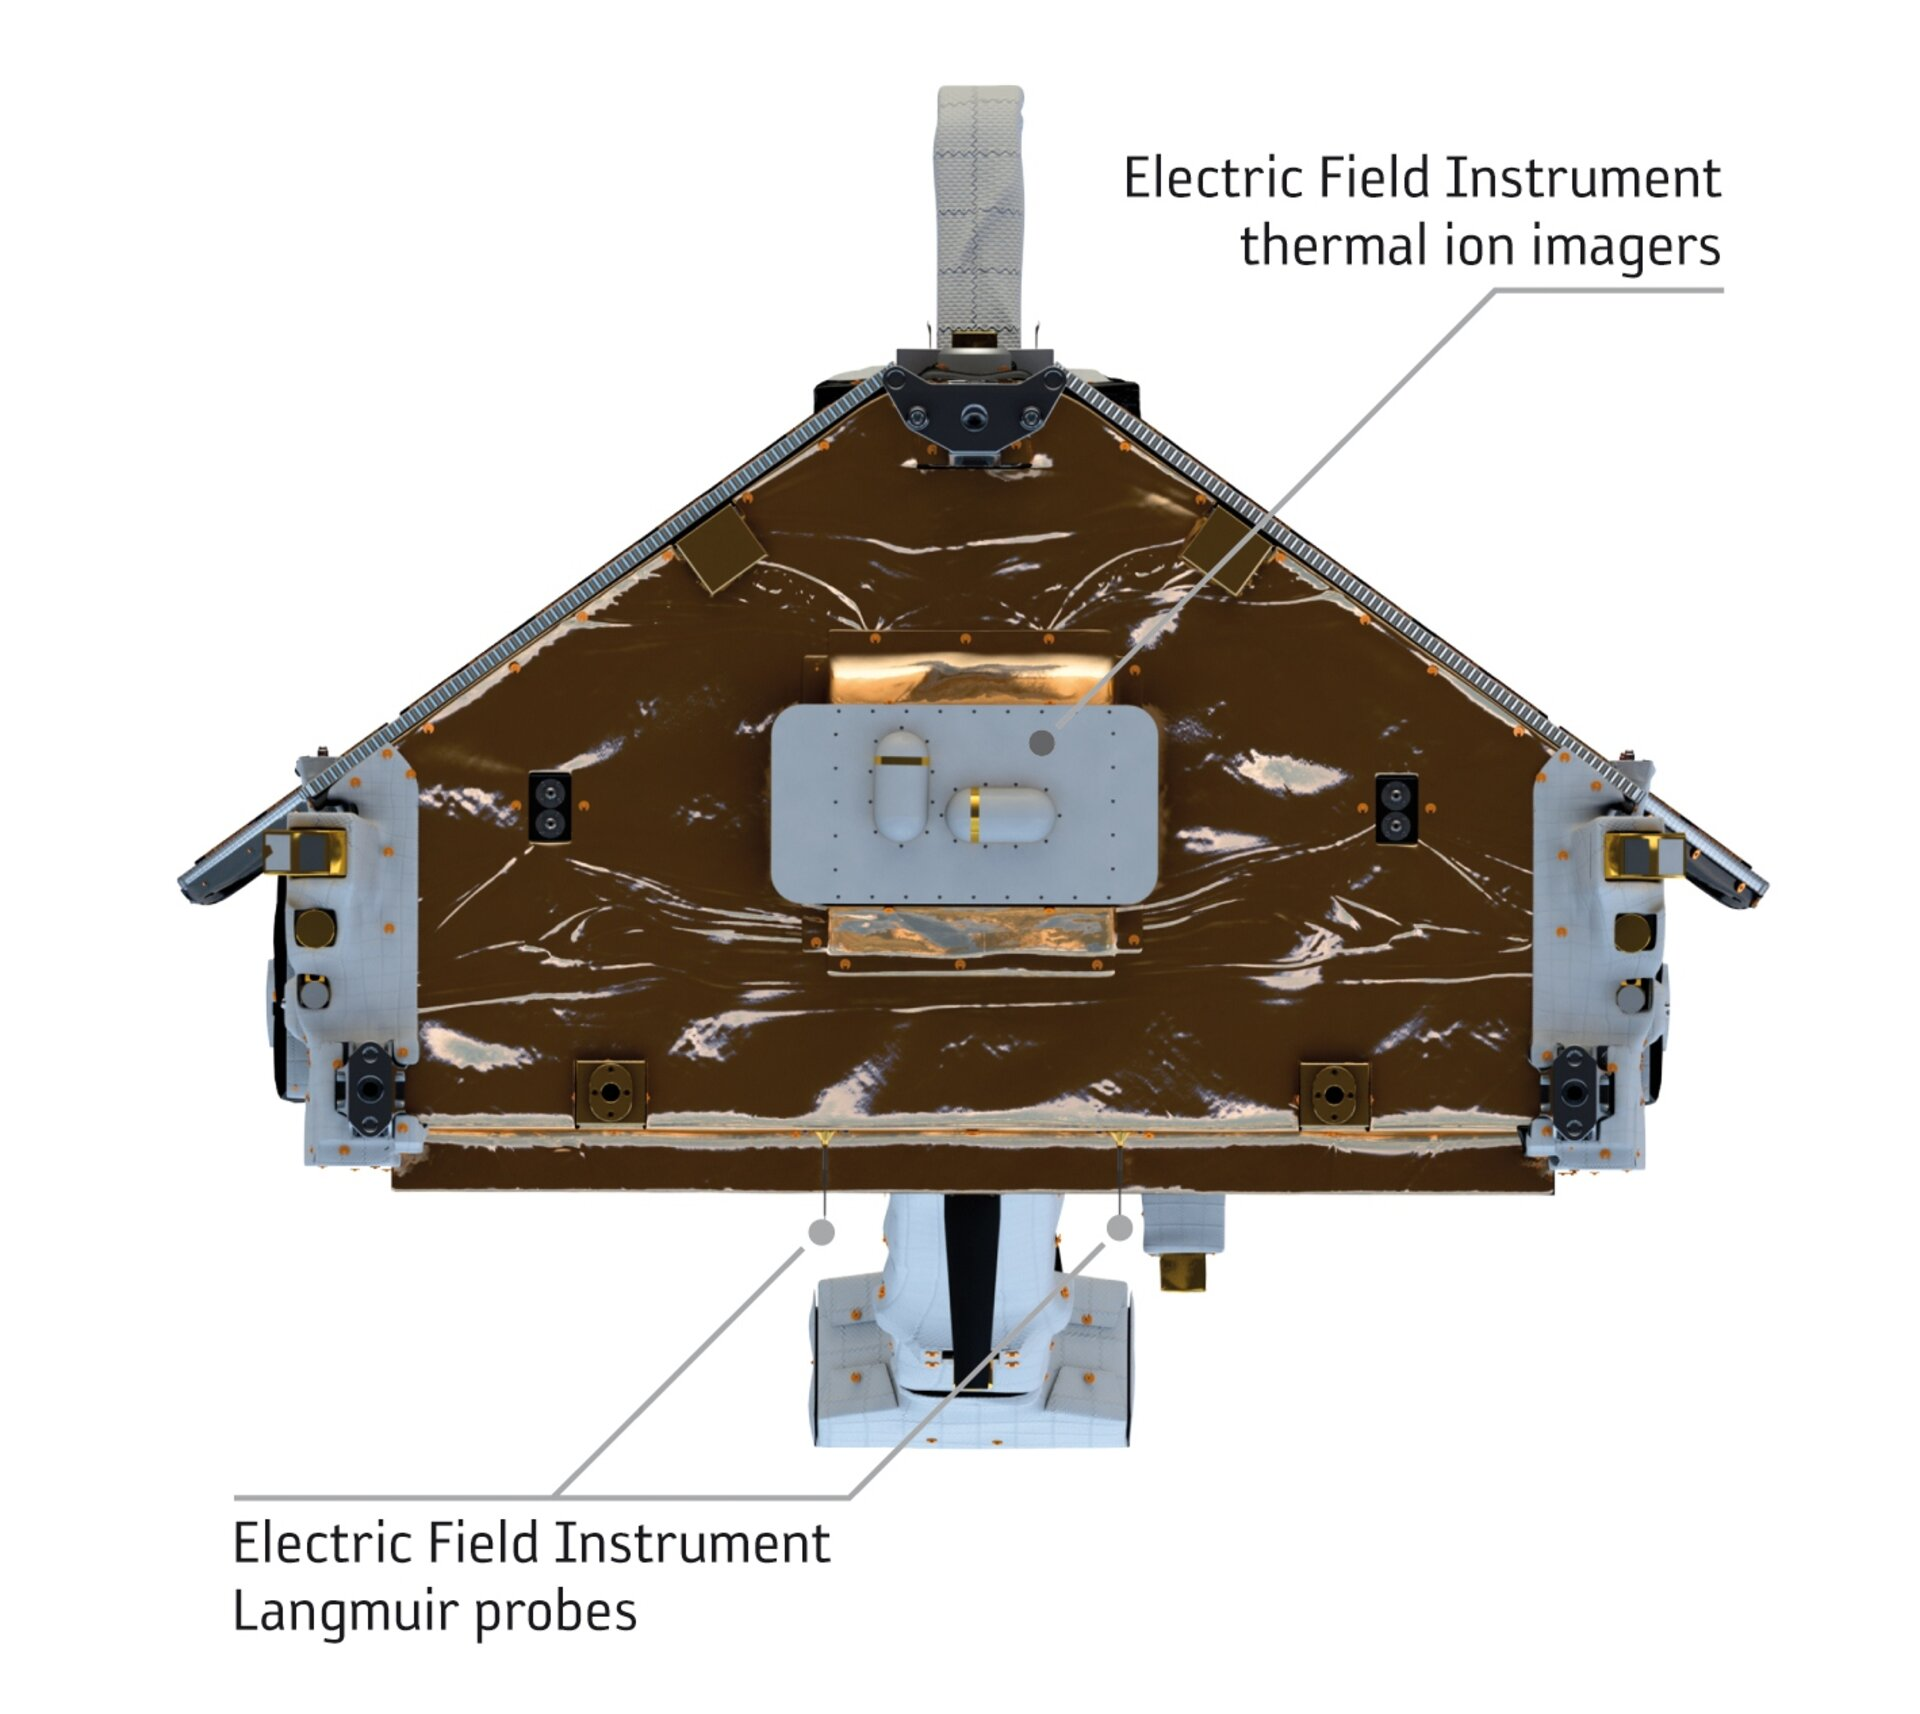 Swarm instruments (front view)